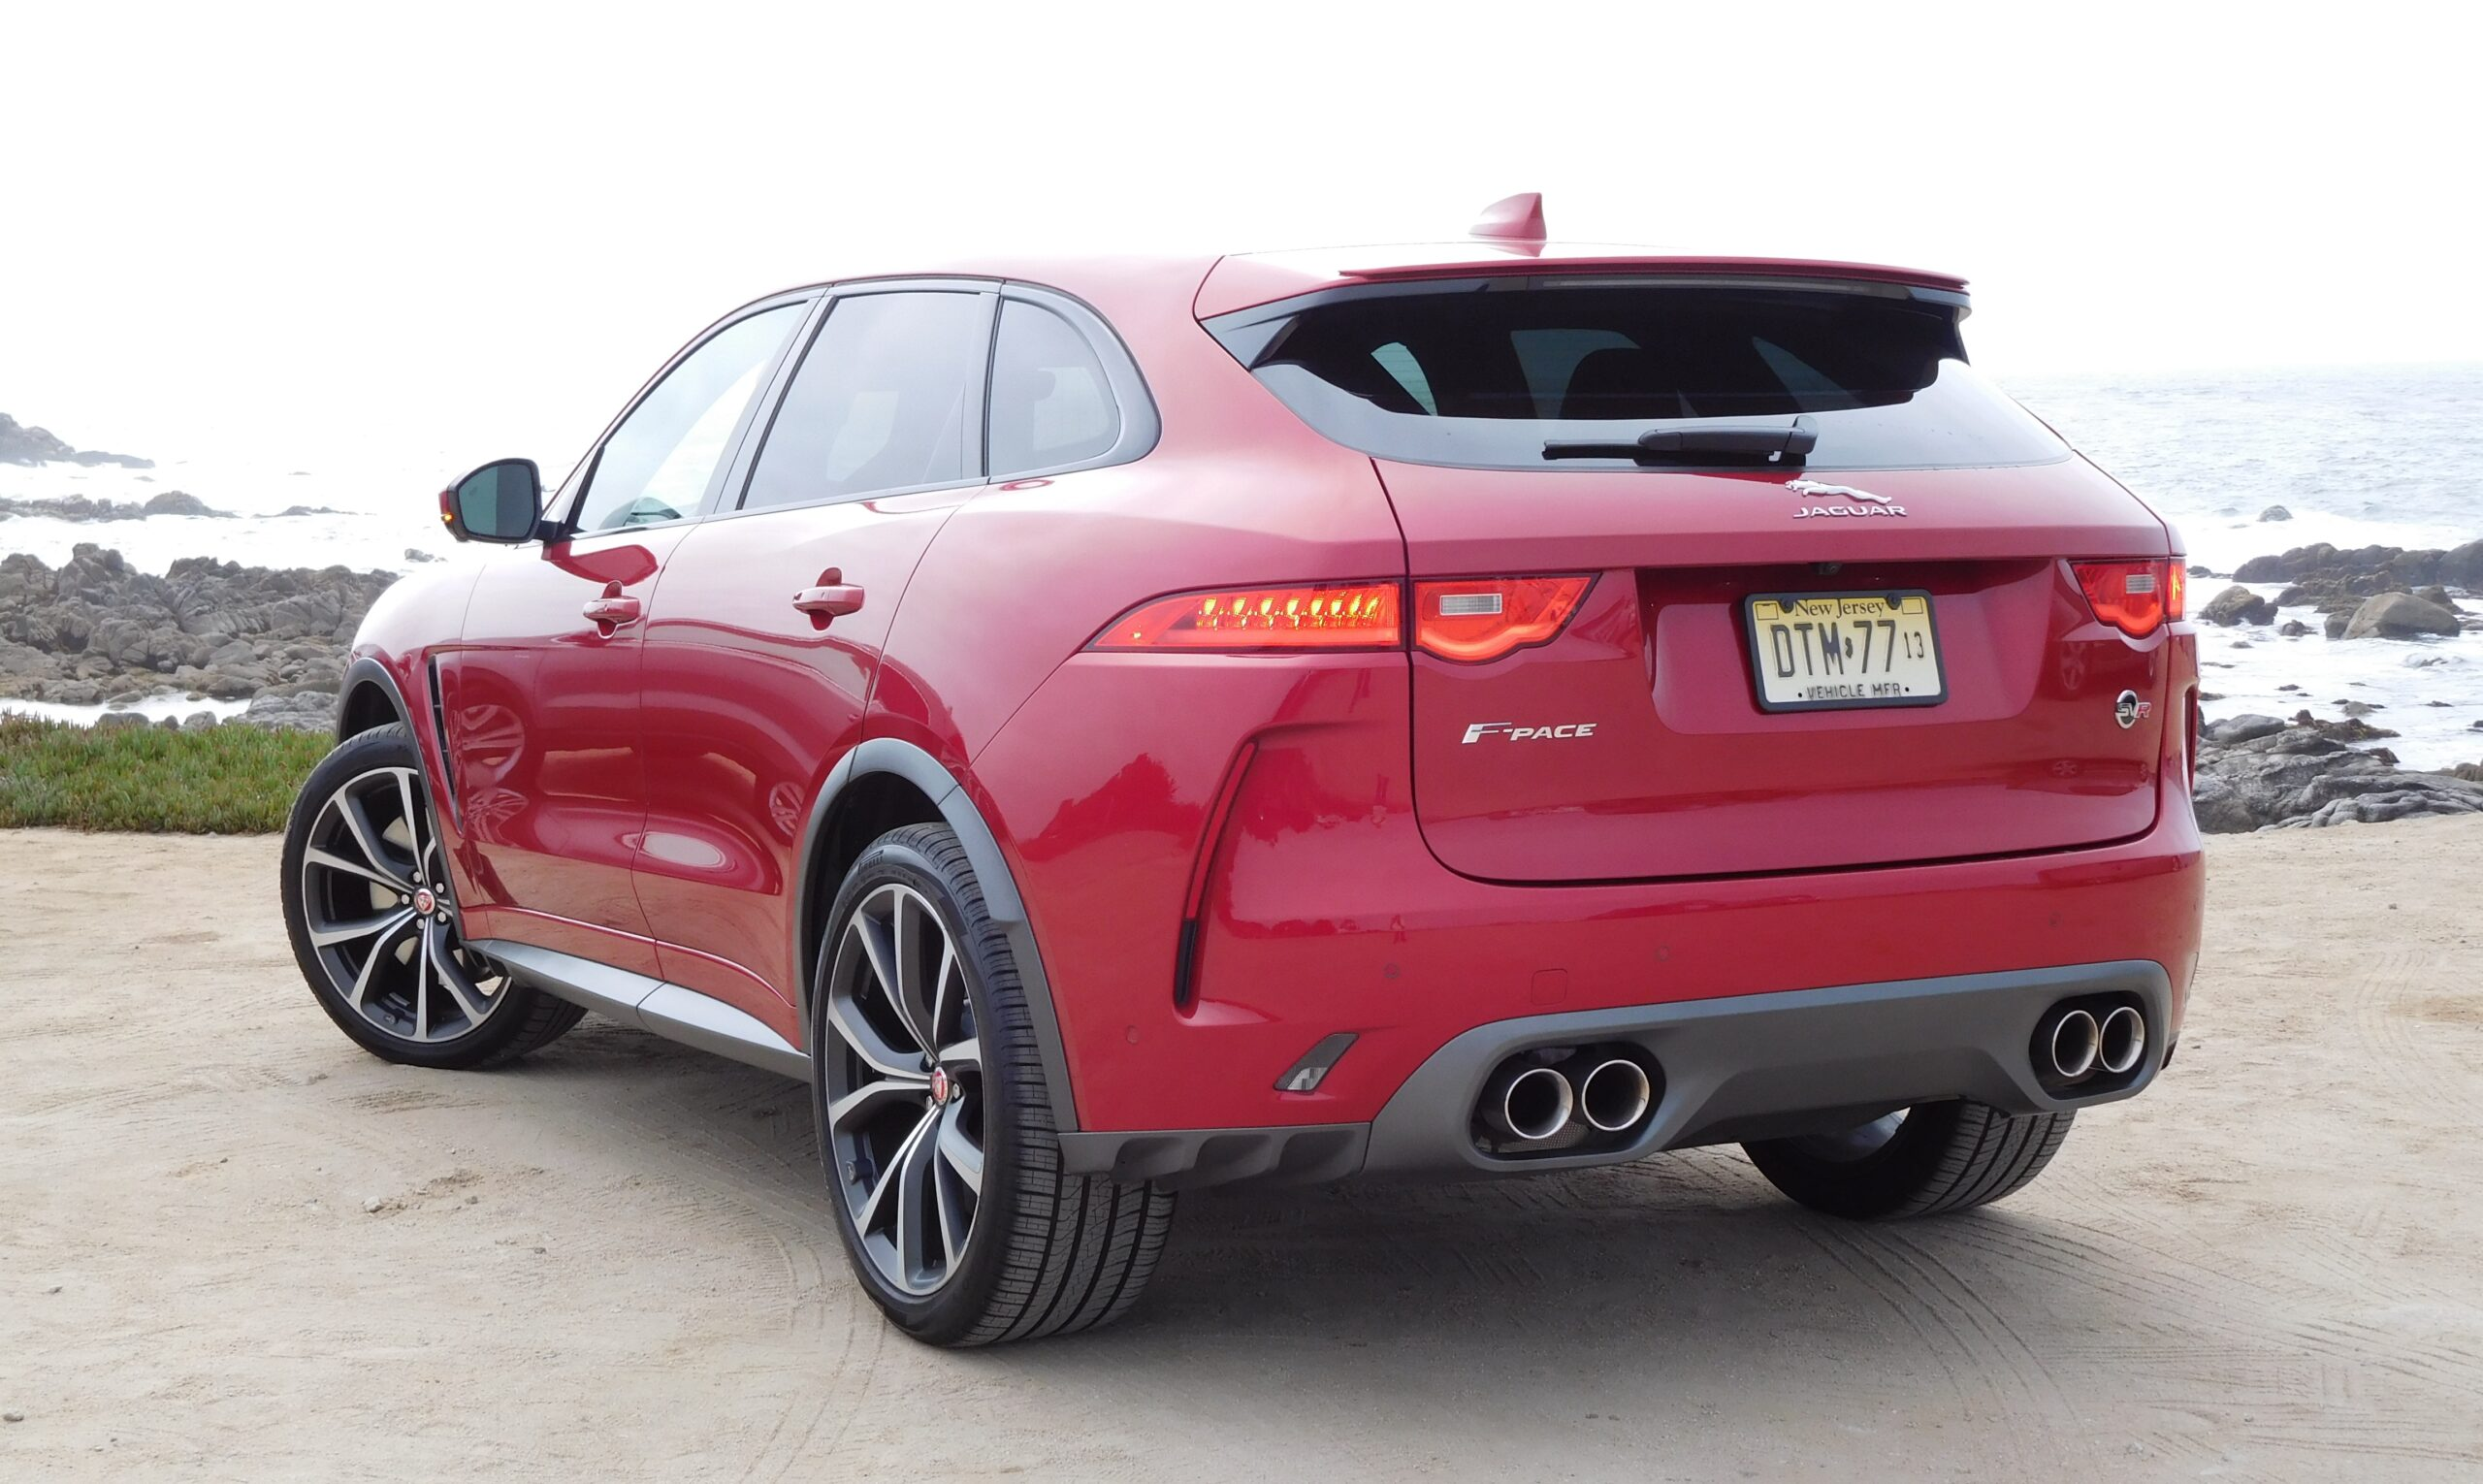 A rear view of the F-Pace